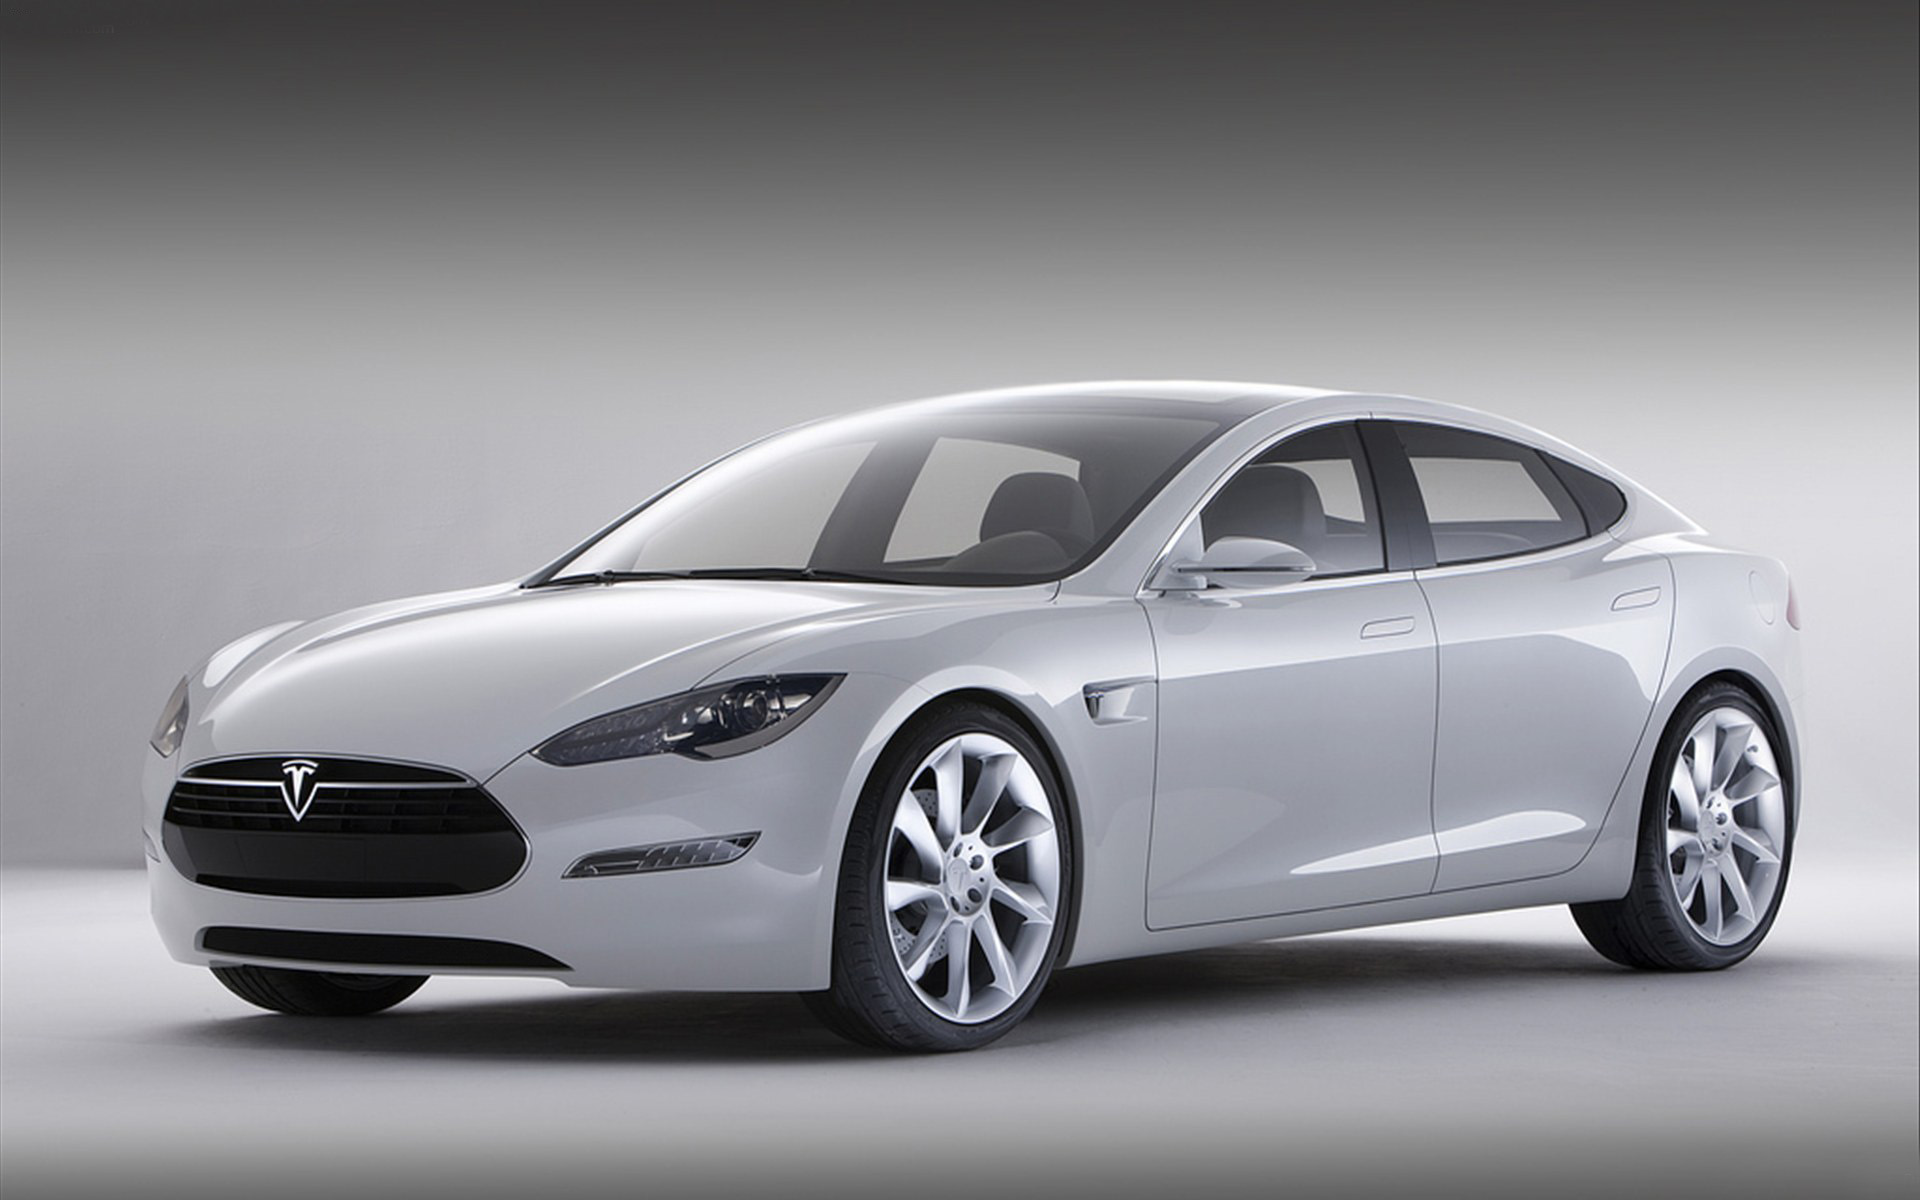 2013 tesla model s wallpaper hd car wallpapers id 2498. Black Bedroom Furniture Sets. Home Design Ideas